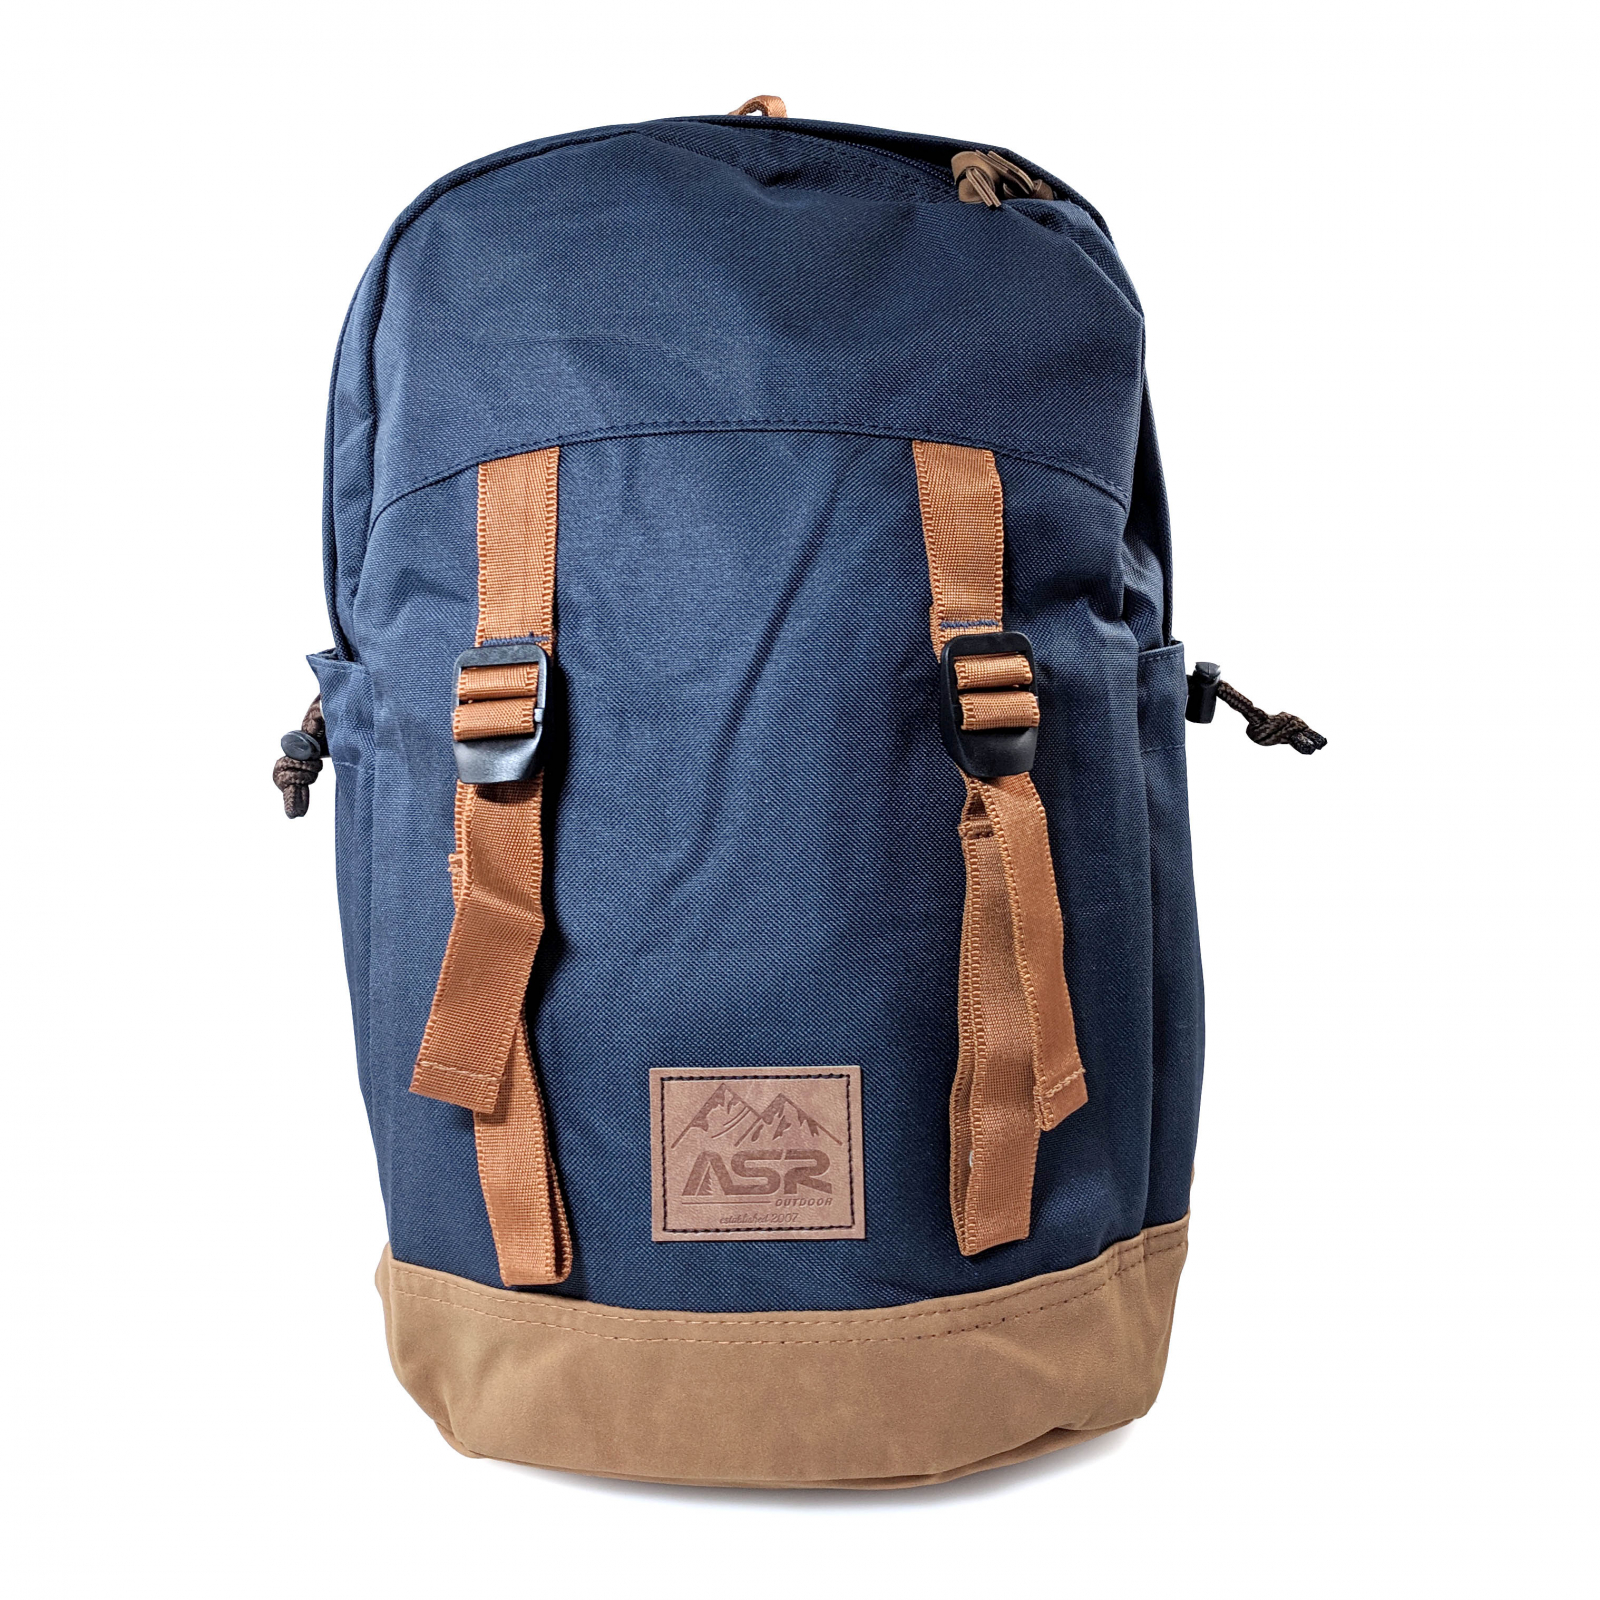 ASR Outdoor 18L Day Tripper Backpack for Outdoor Recreation Navy and Brown